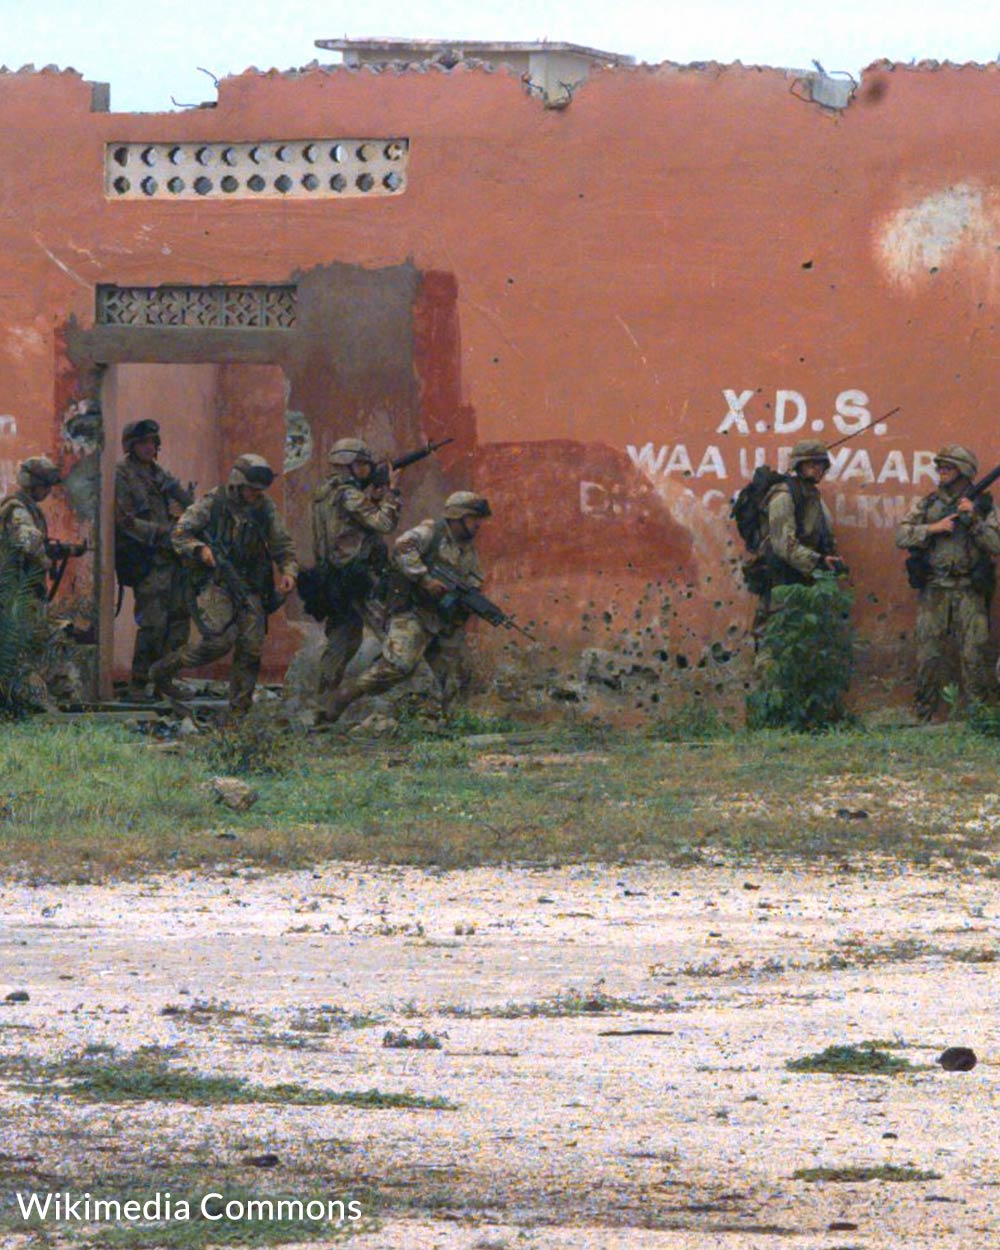 U.S. Marines search for a weapons cache in the Somali capital city of Mogadishu.